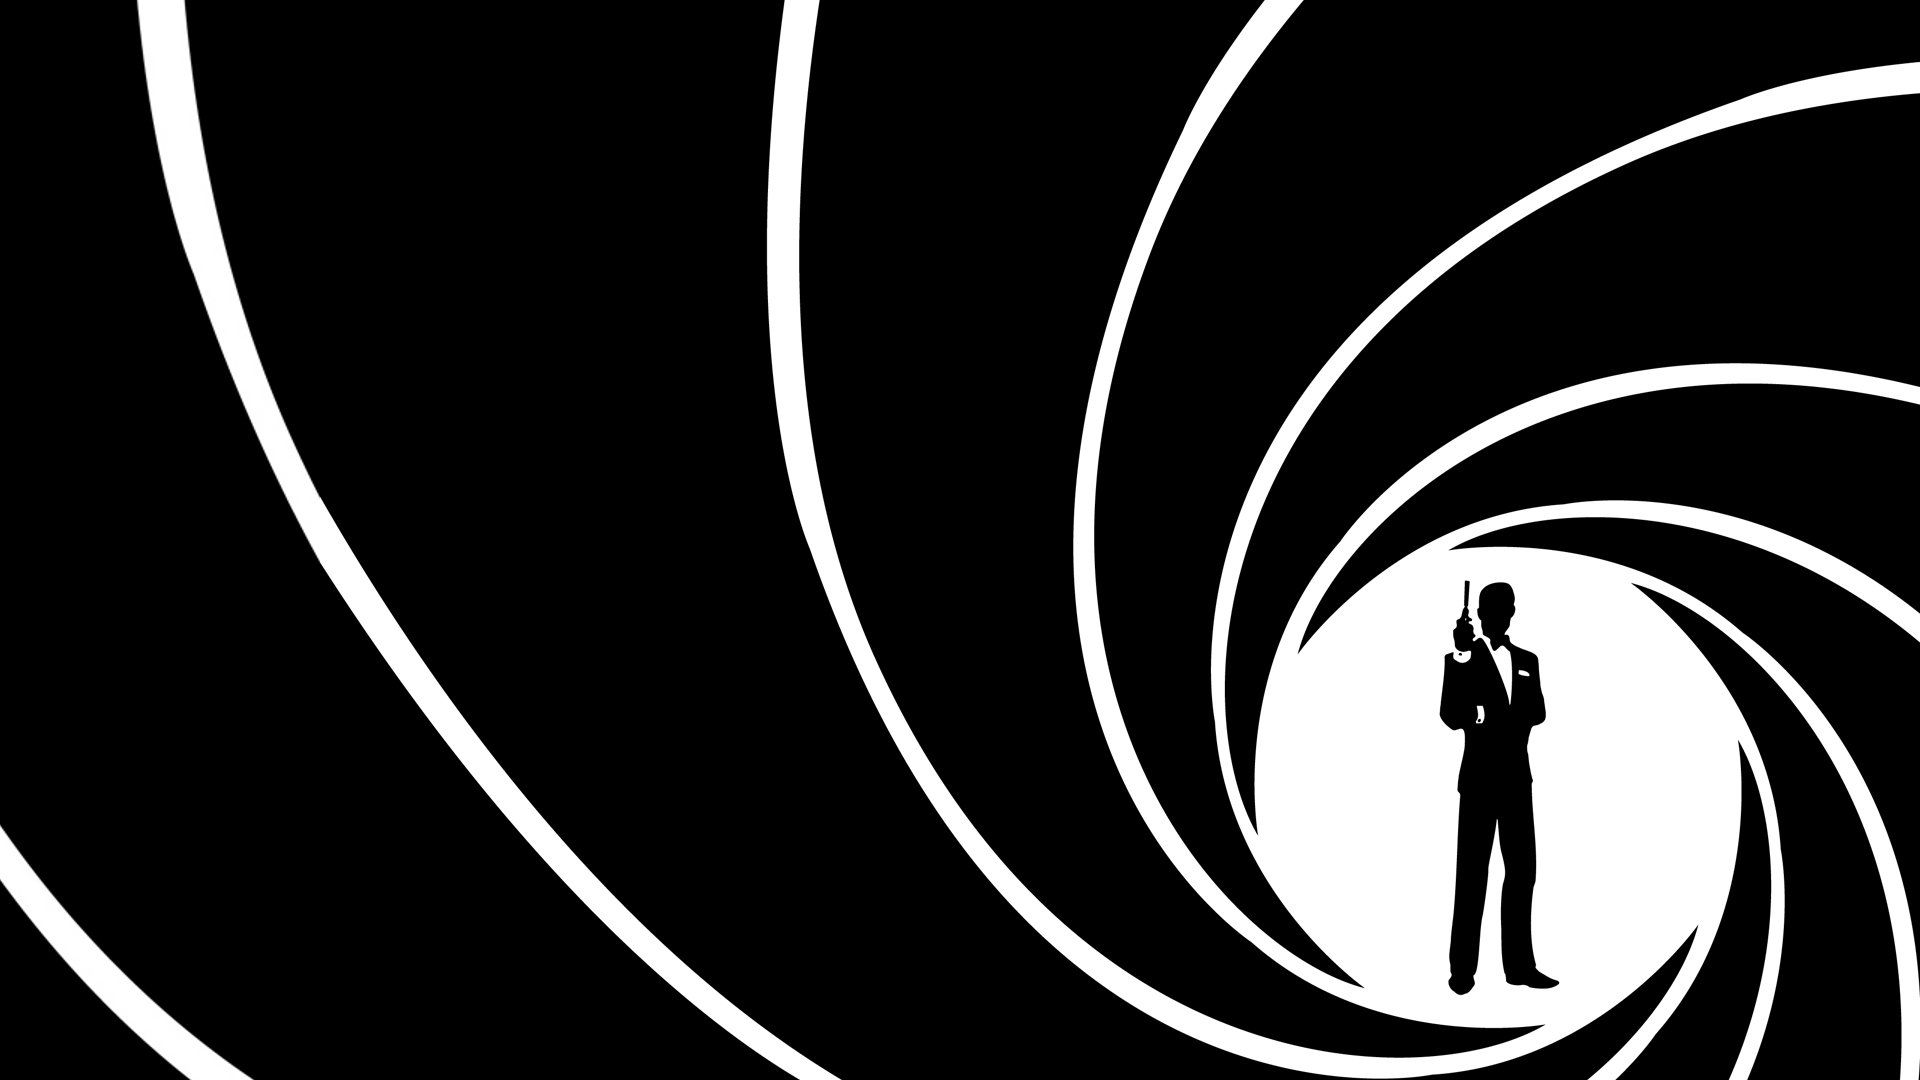 James Bond: Spectre Wallpapers, Pictures, Images